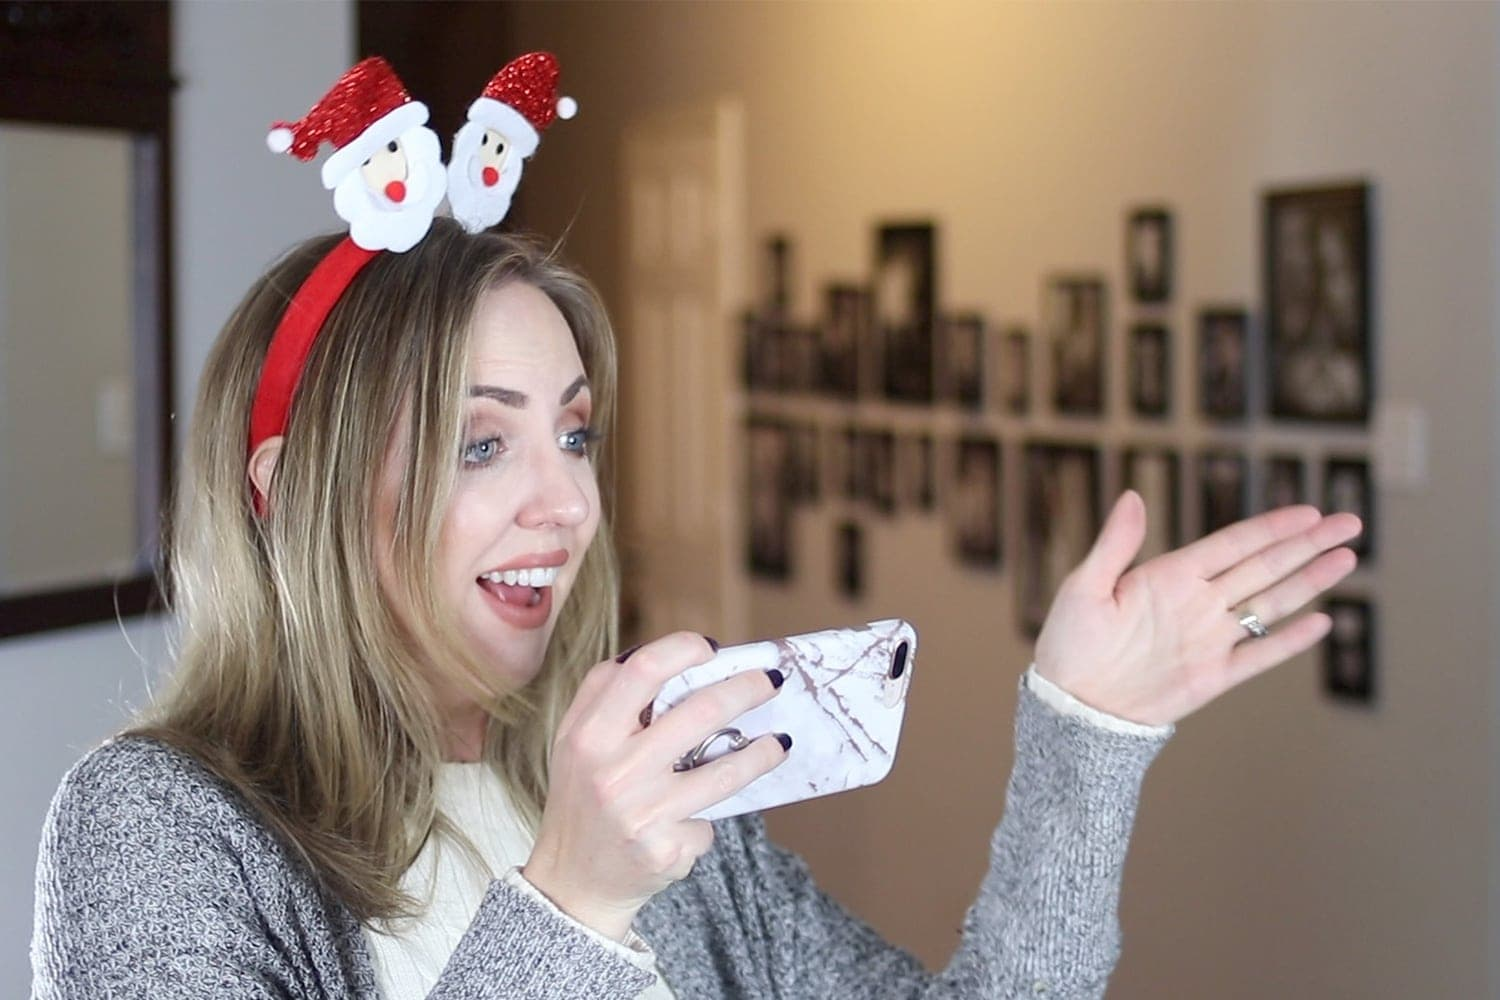 taking a photo - holiday bloopers by Houston blogger Meg O. on the Go